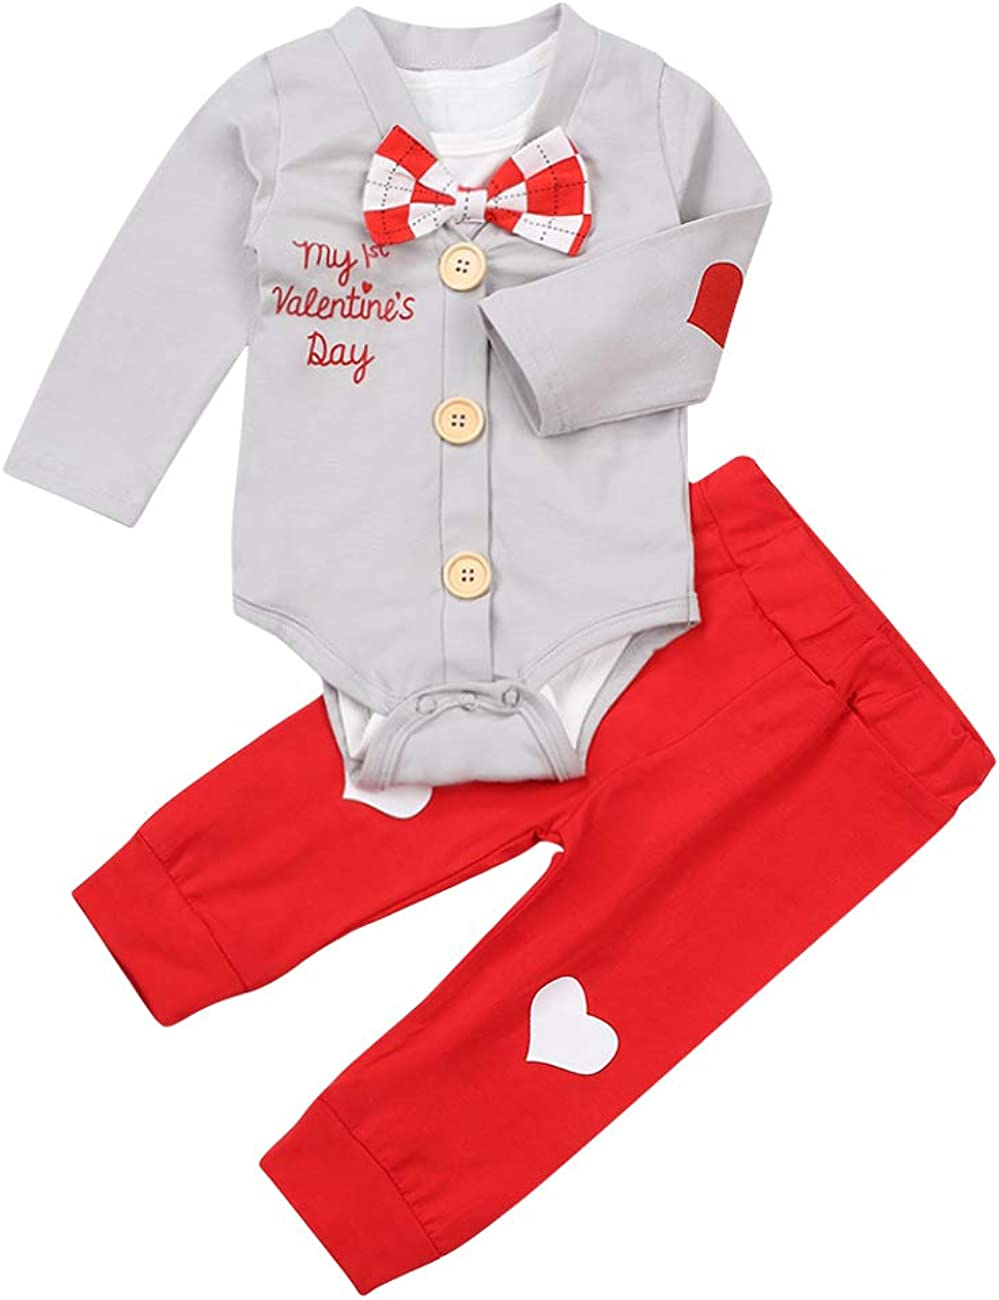 TUEMOS Newborn Infant Baby Boy Valentines Clothes My 1st Valentines Day Outfits Bow-tie Romper+Coat+Heart Pants 3PC Clothes